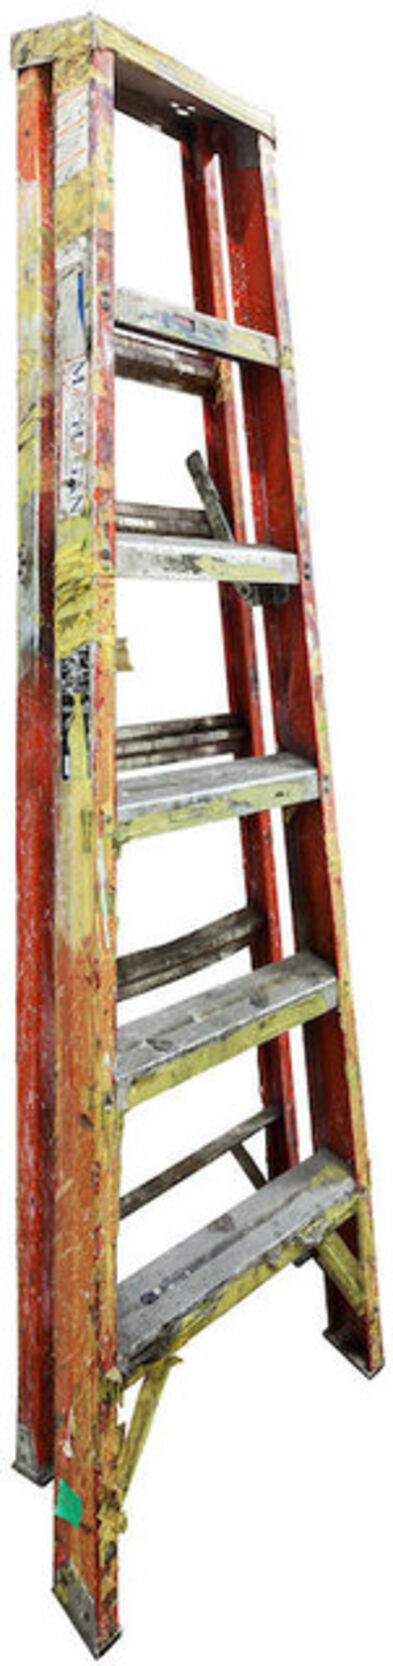 Jennifer Williams, 'Medium Folding Ladder: Orange with Silver Top and Paint', 2014